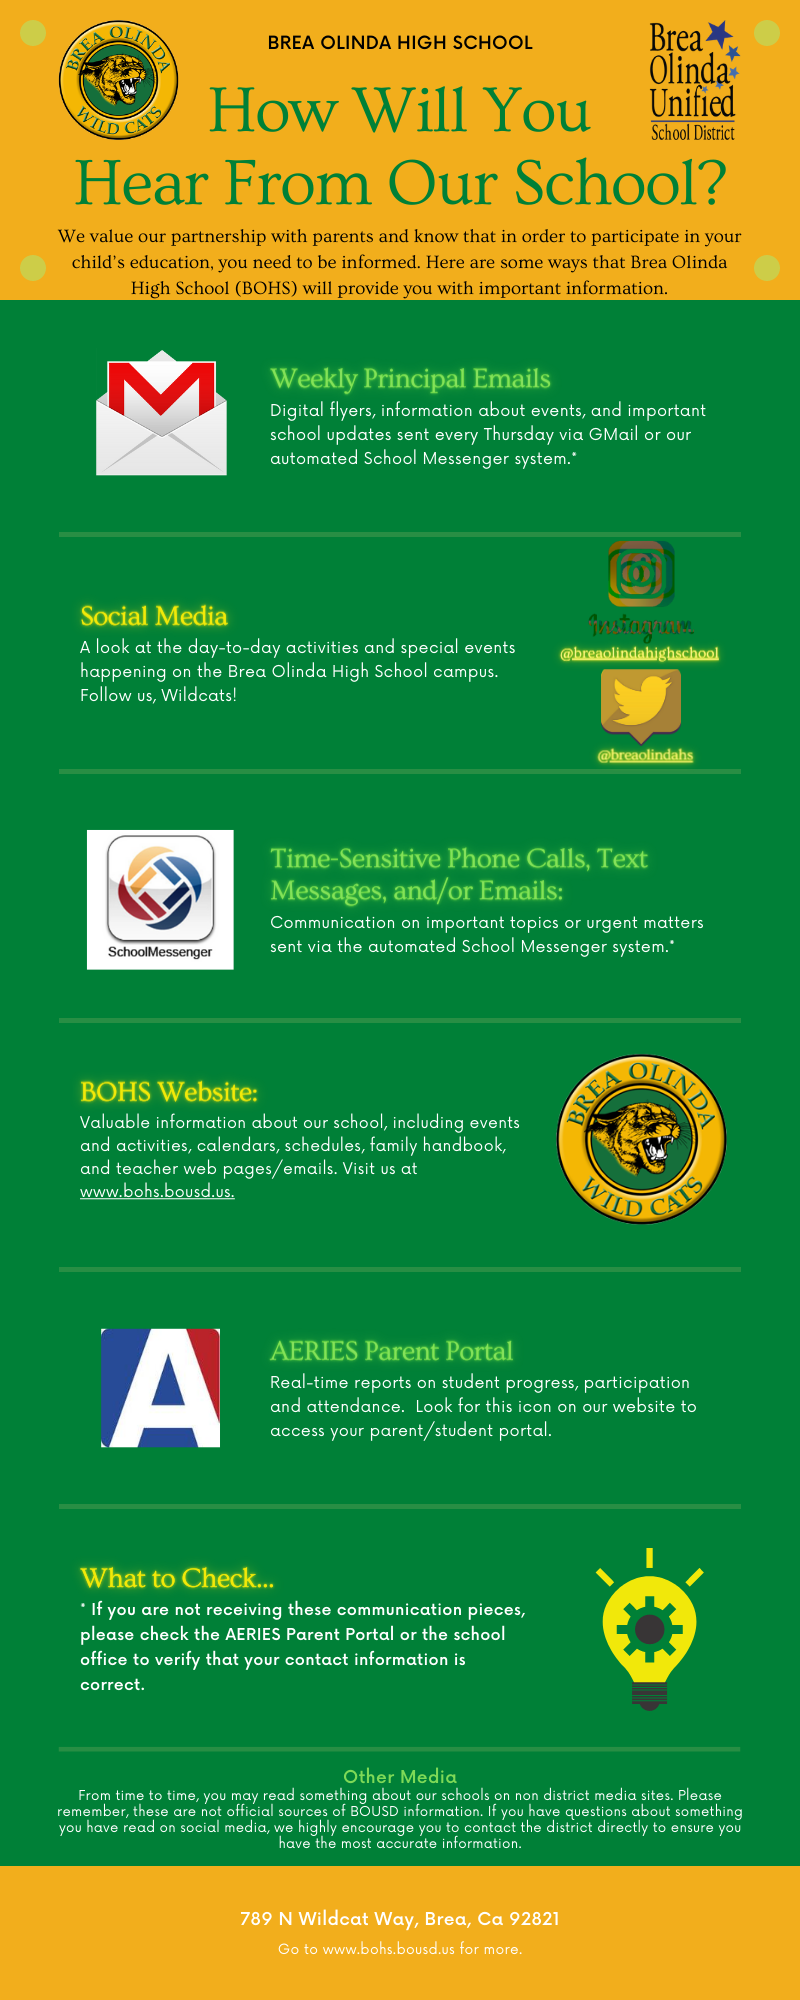 BOHS Communications Infographic